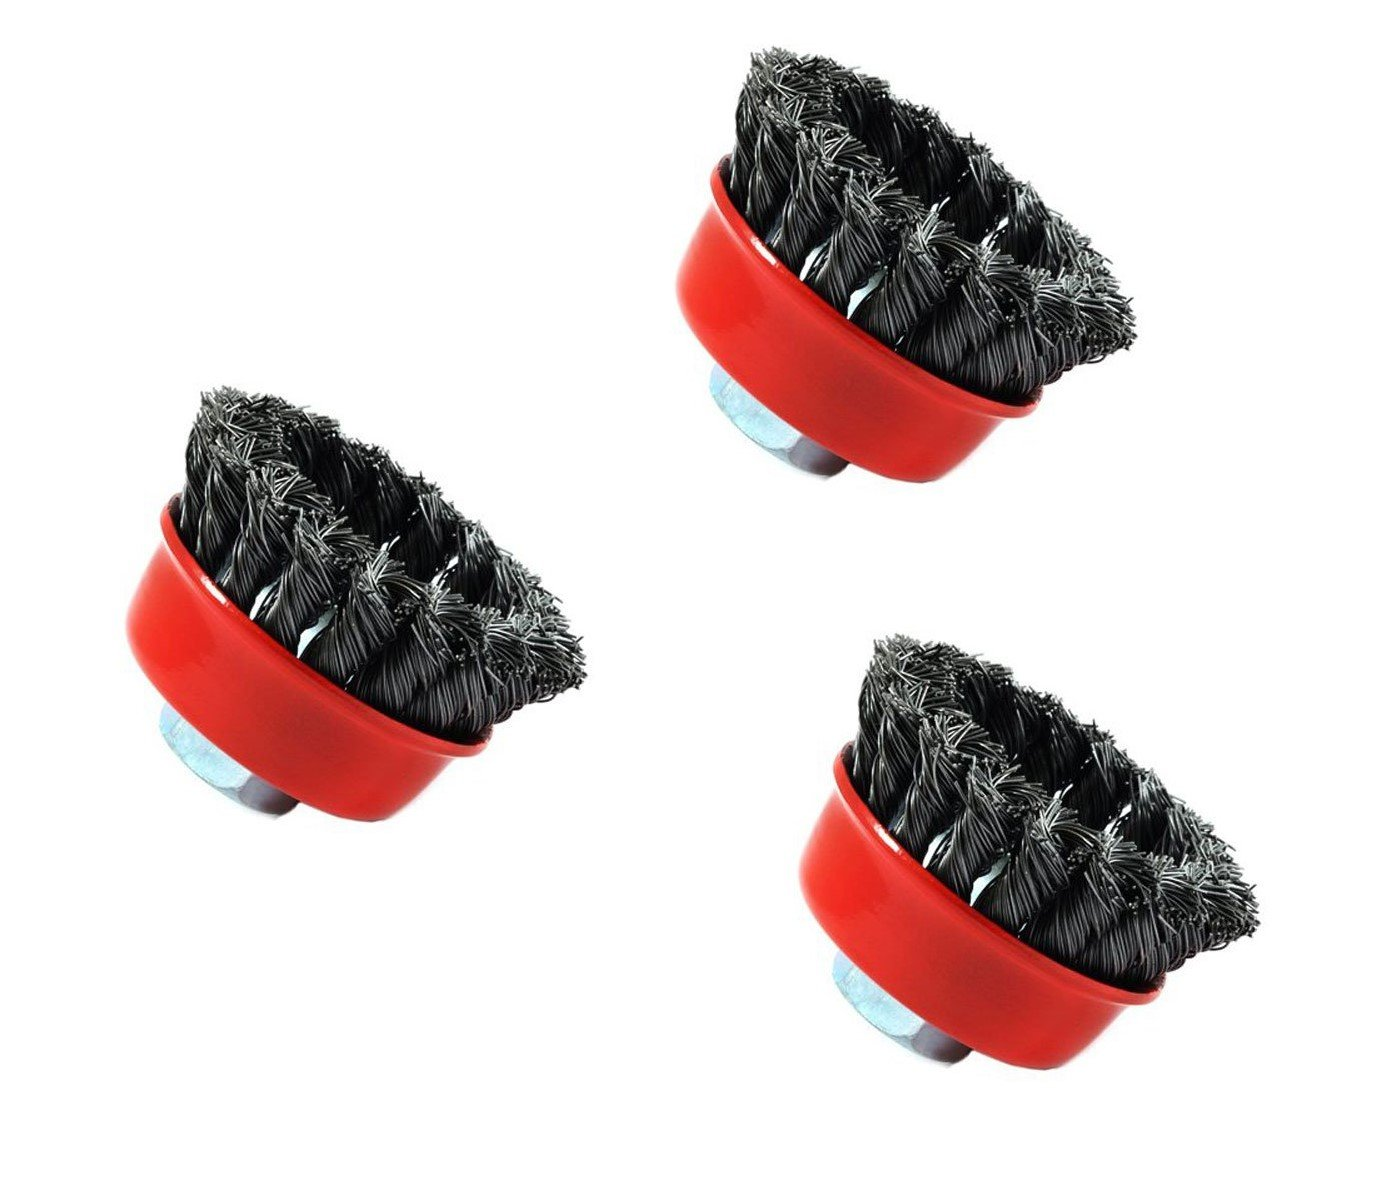 Forney 72757 Wire Cup Brush, Knotted with 5/8-Inch-11 Threaded Arbor, 2-3/4-Inch-by-.020-Inch, 3 Pack